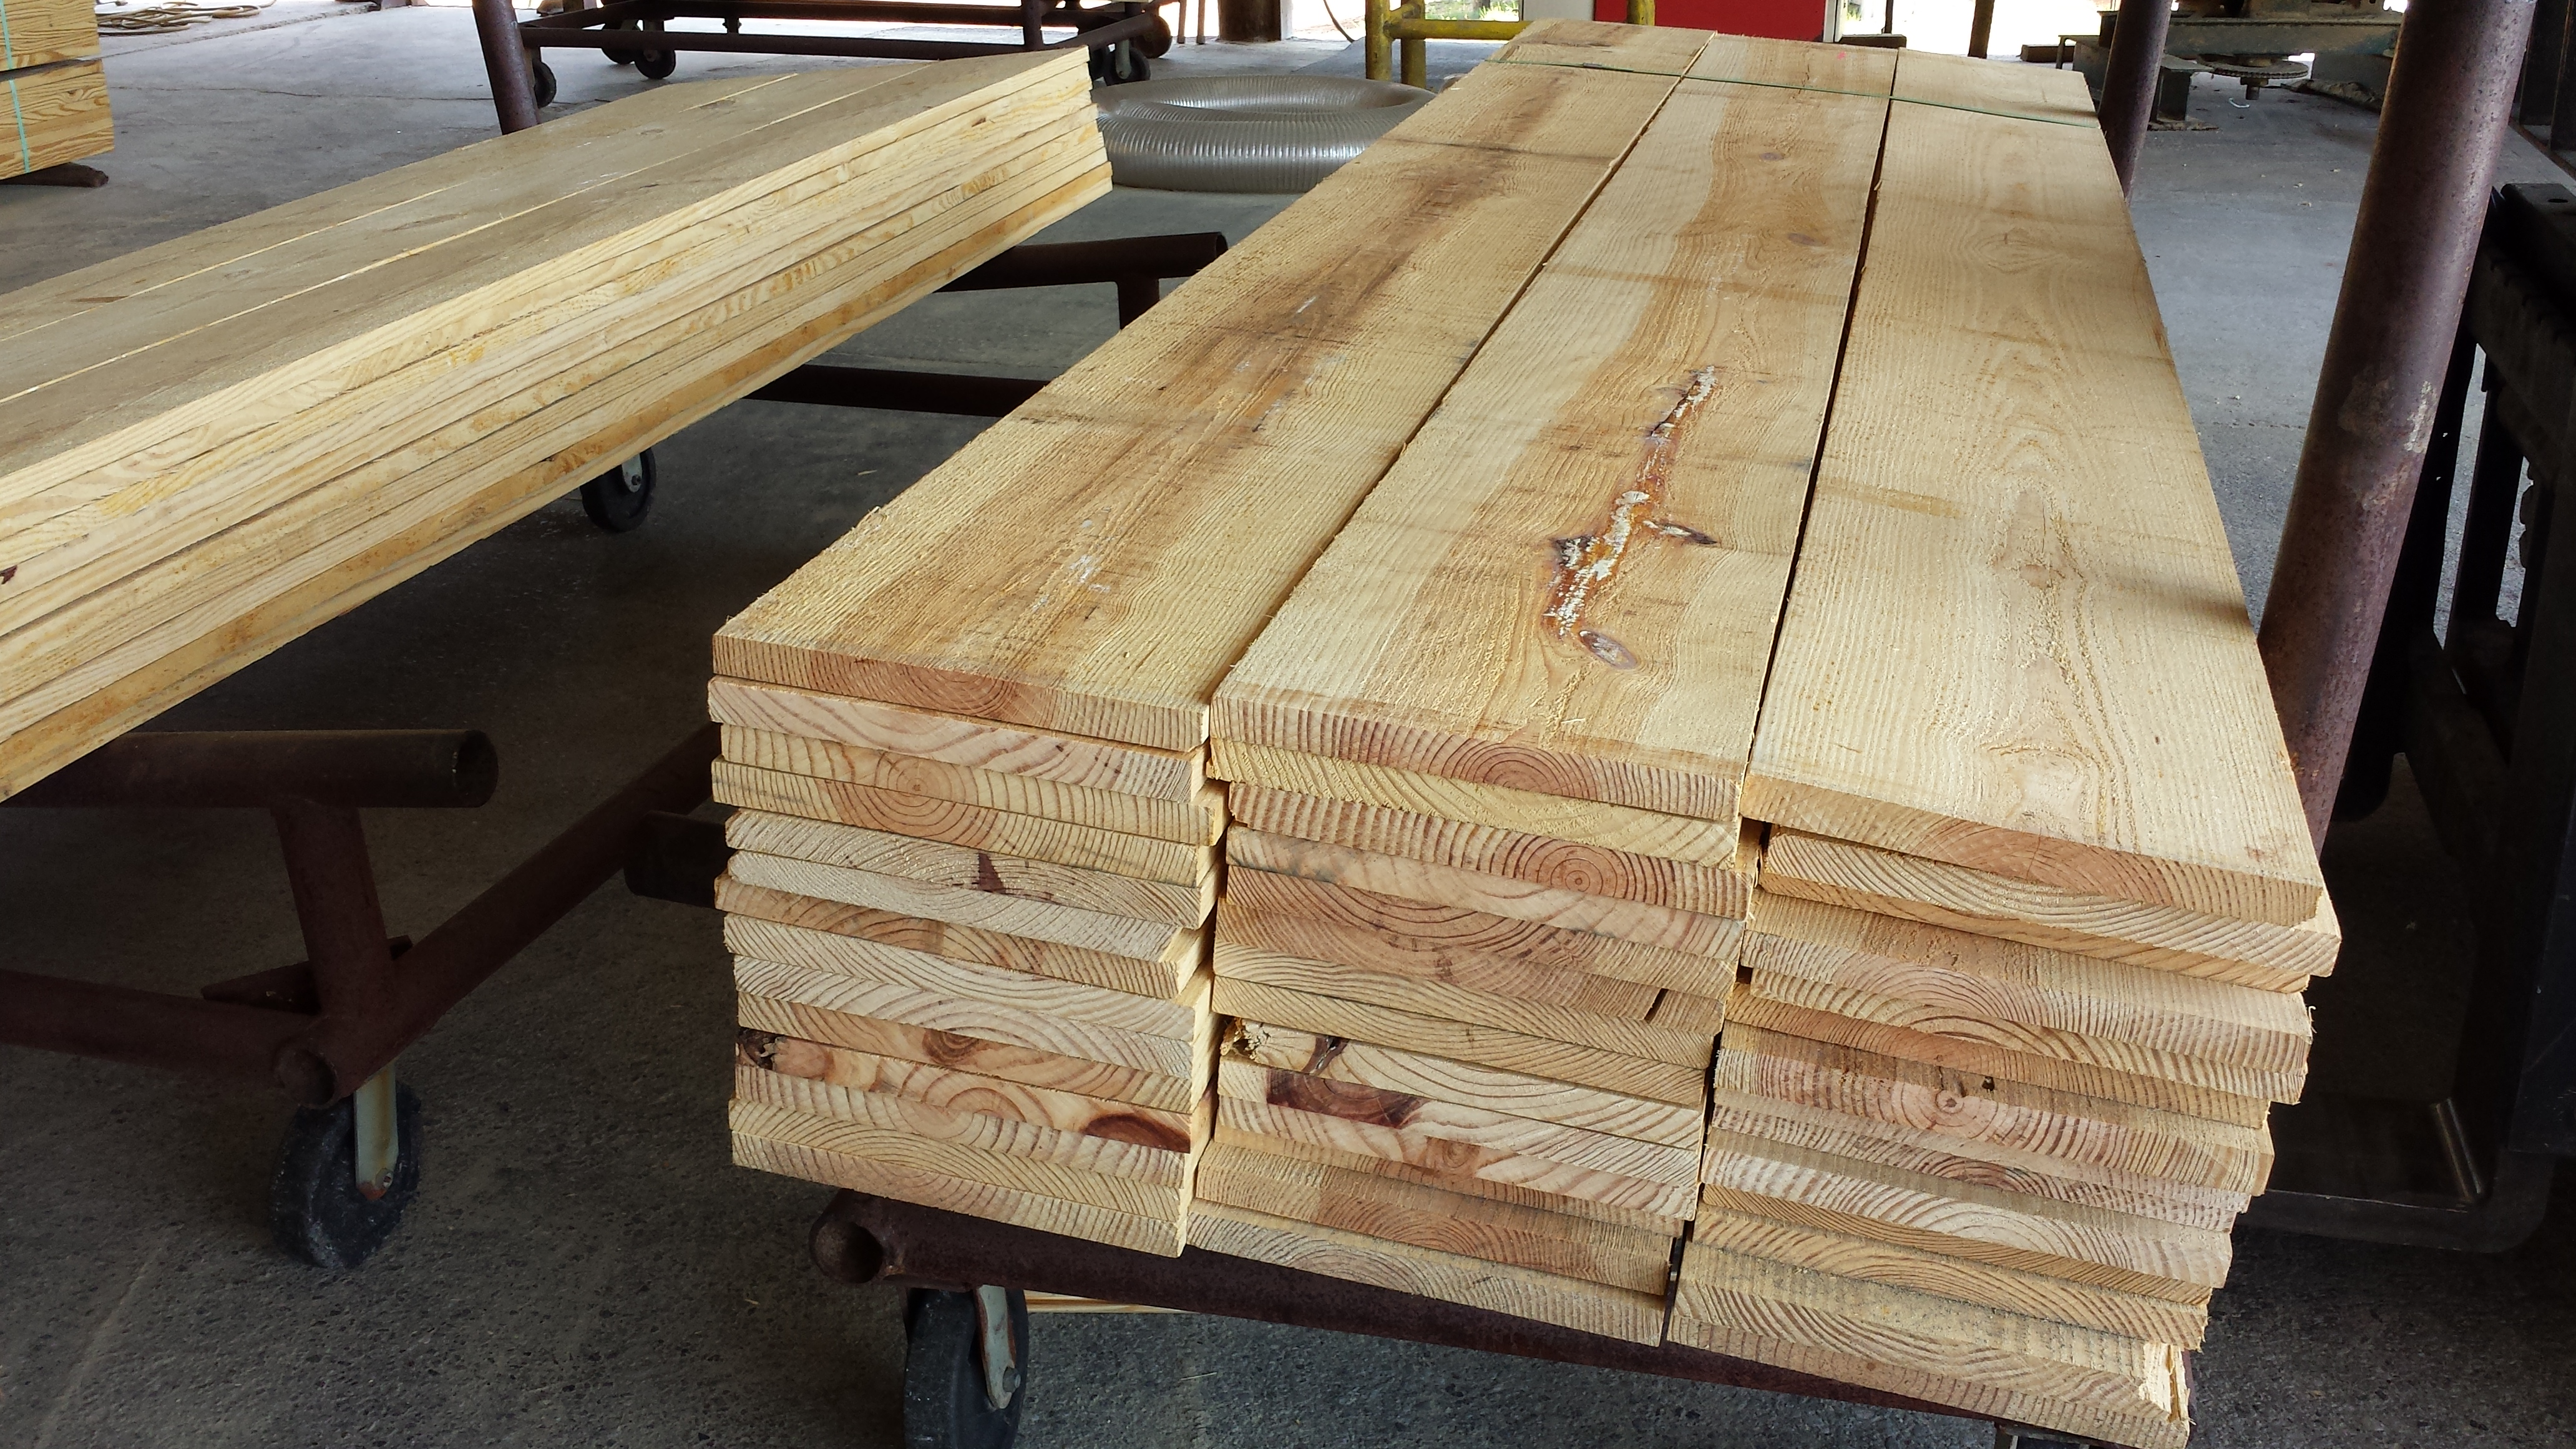 Rough Cut Pine Interior Heart Pine Floors Southern Pine